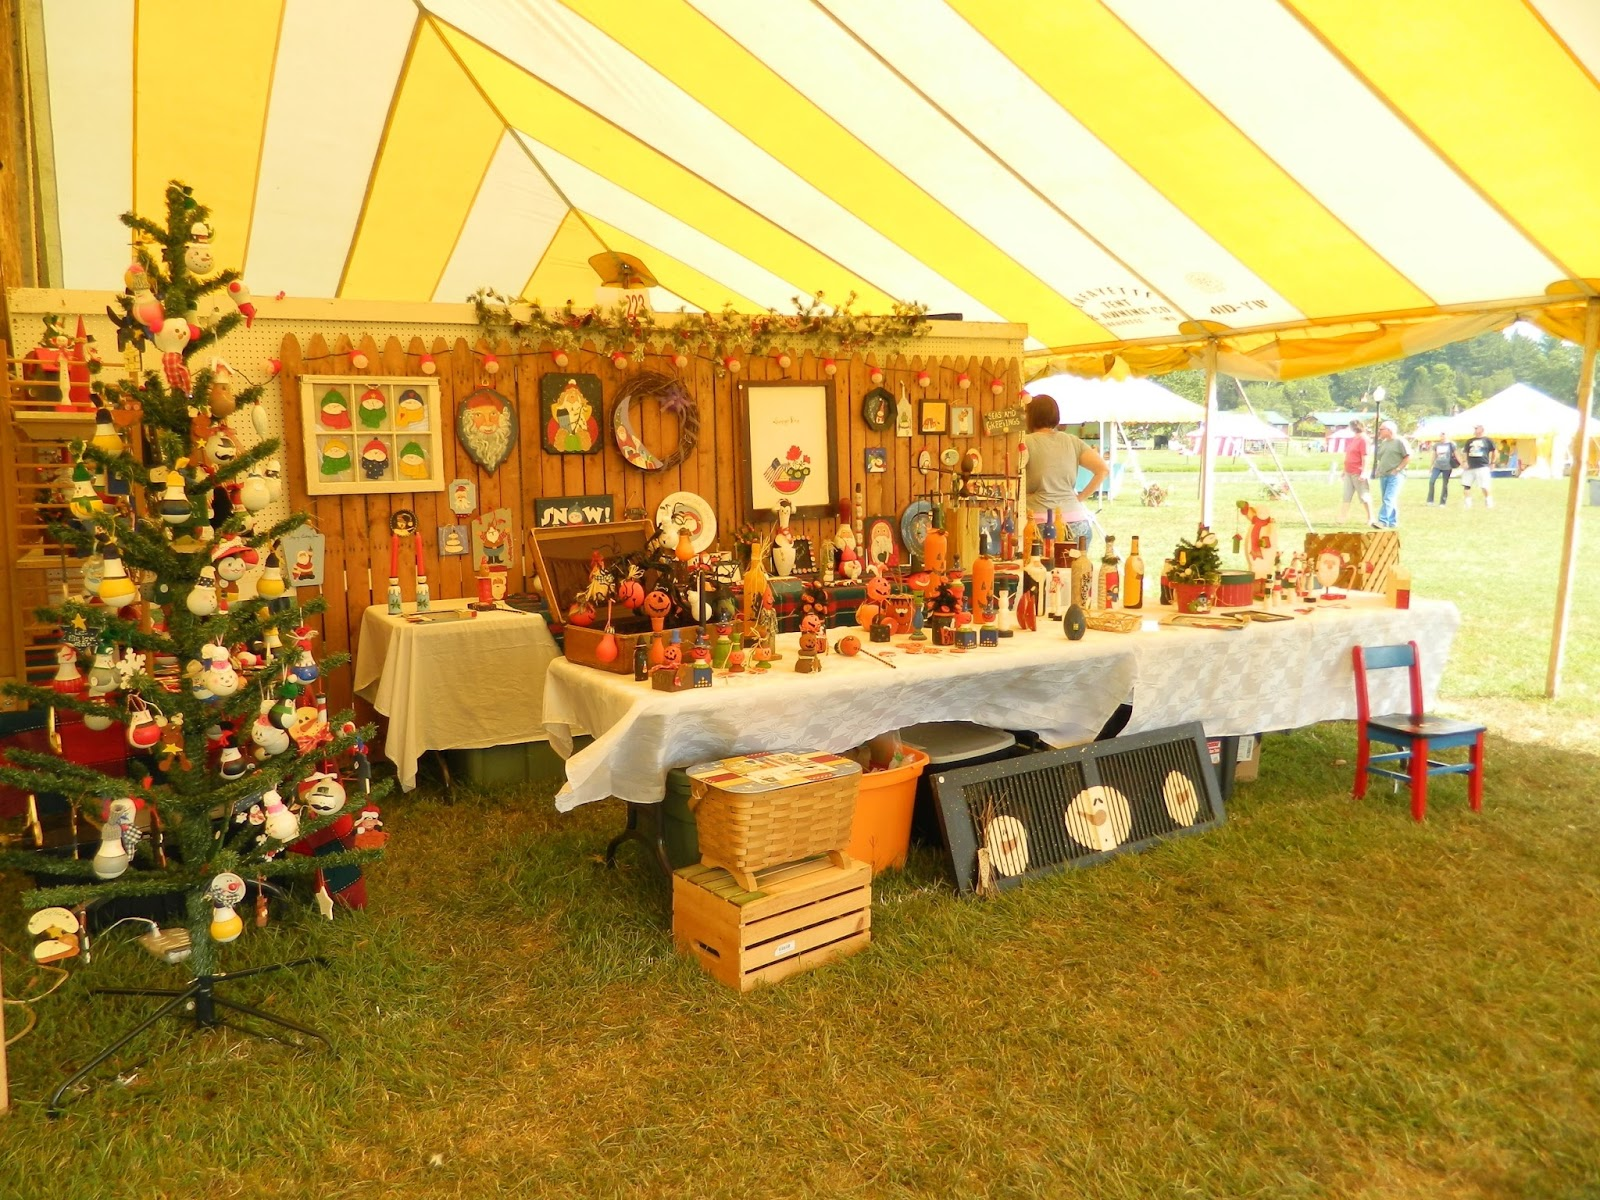 Mountain state art and craft fair ripley wv my review for Arts and crafts fairs